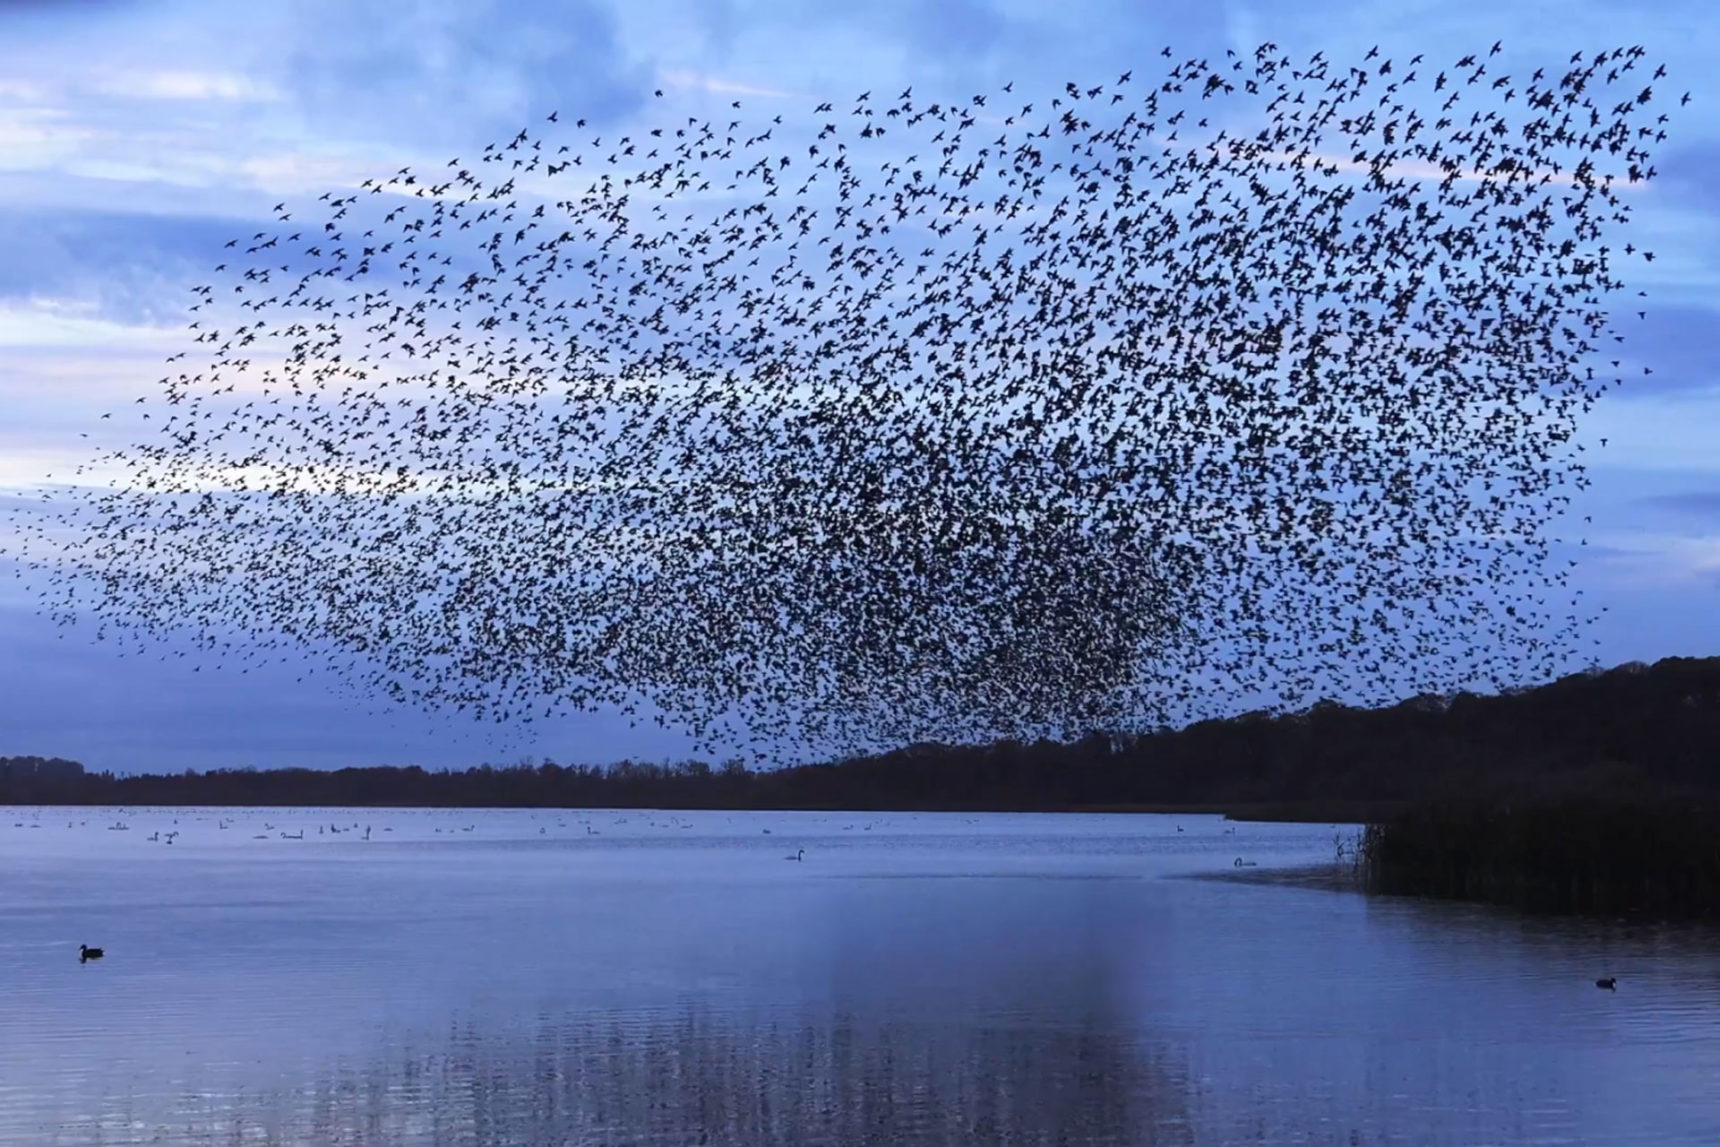 Video: A murmuration of starlings exhibits emergent behavior.